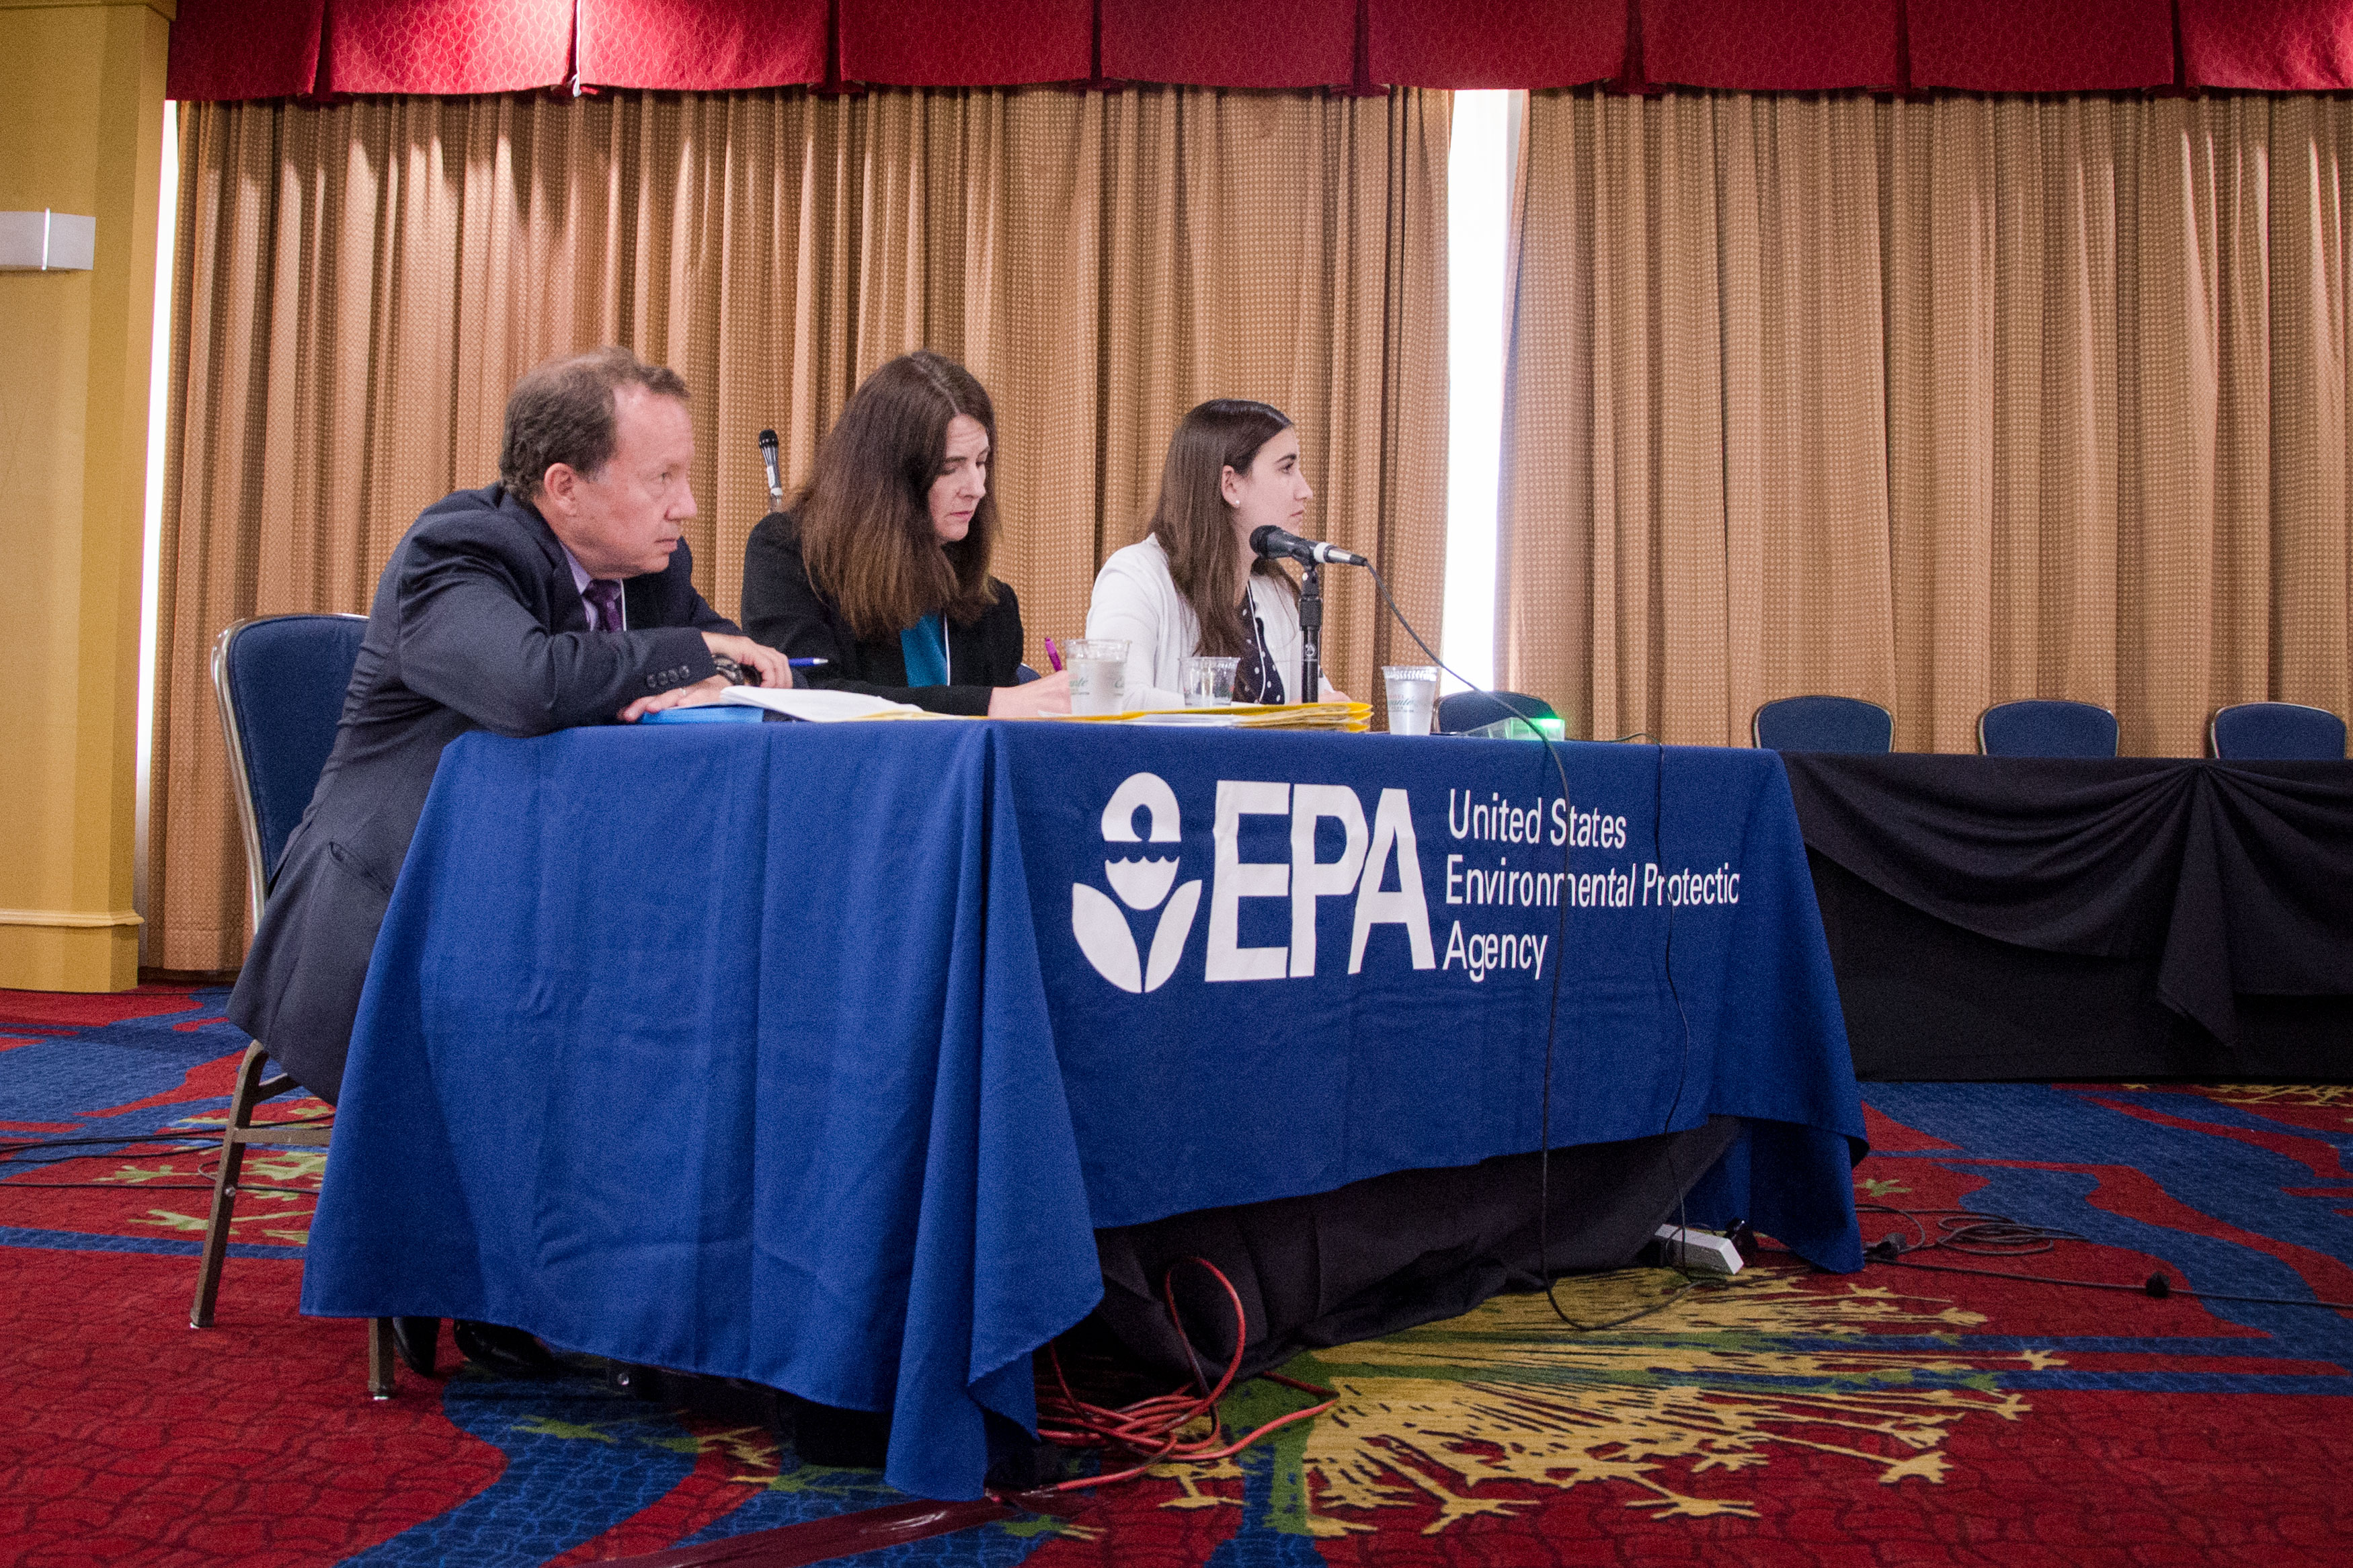 Photo: EPA PFC Listening Session 1 | Colorado Springs - AAwad